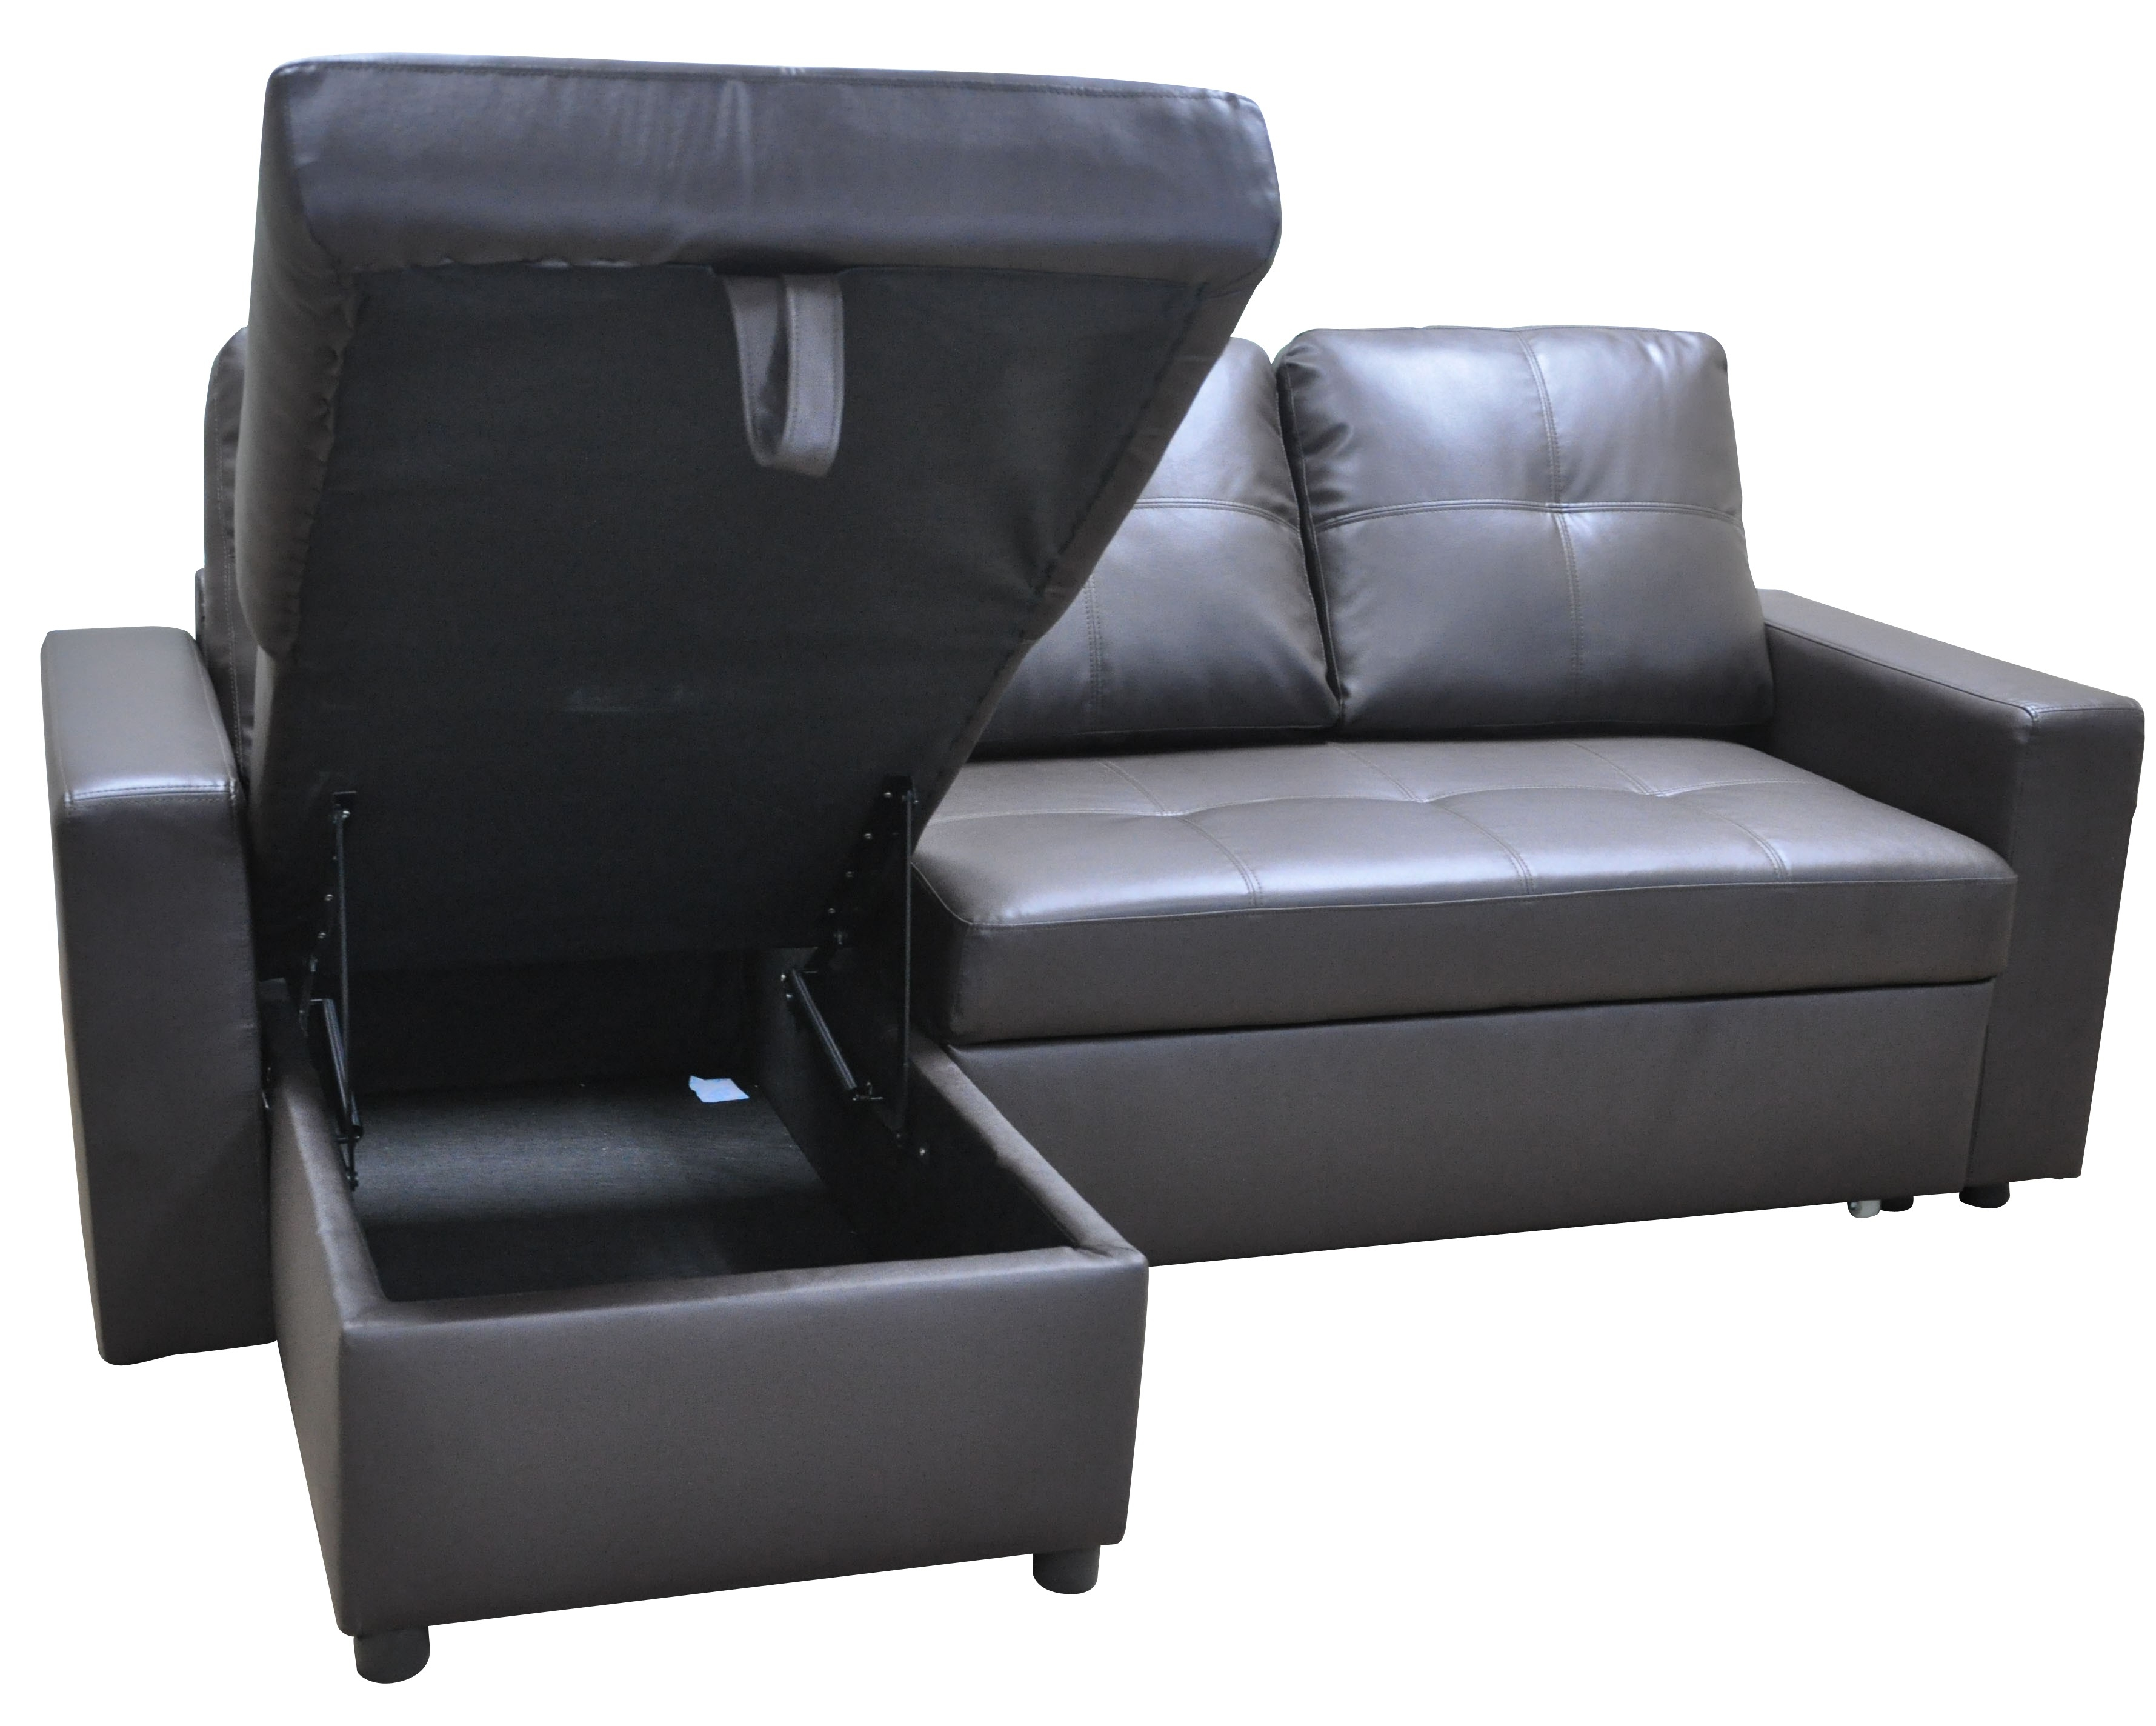 cute small sectional sleeper sofa image-Stunning Small Sectional Sleeper sofa Décor